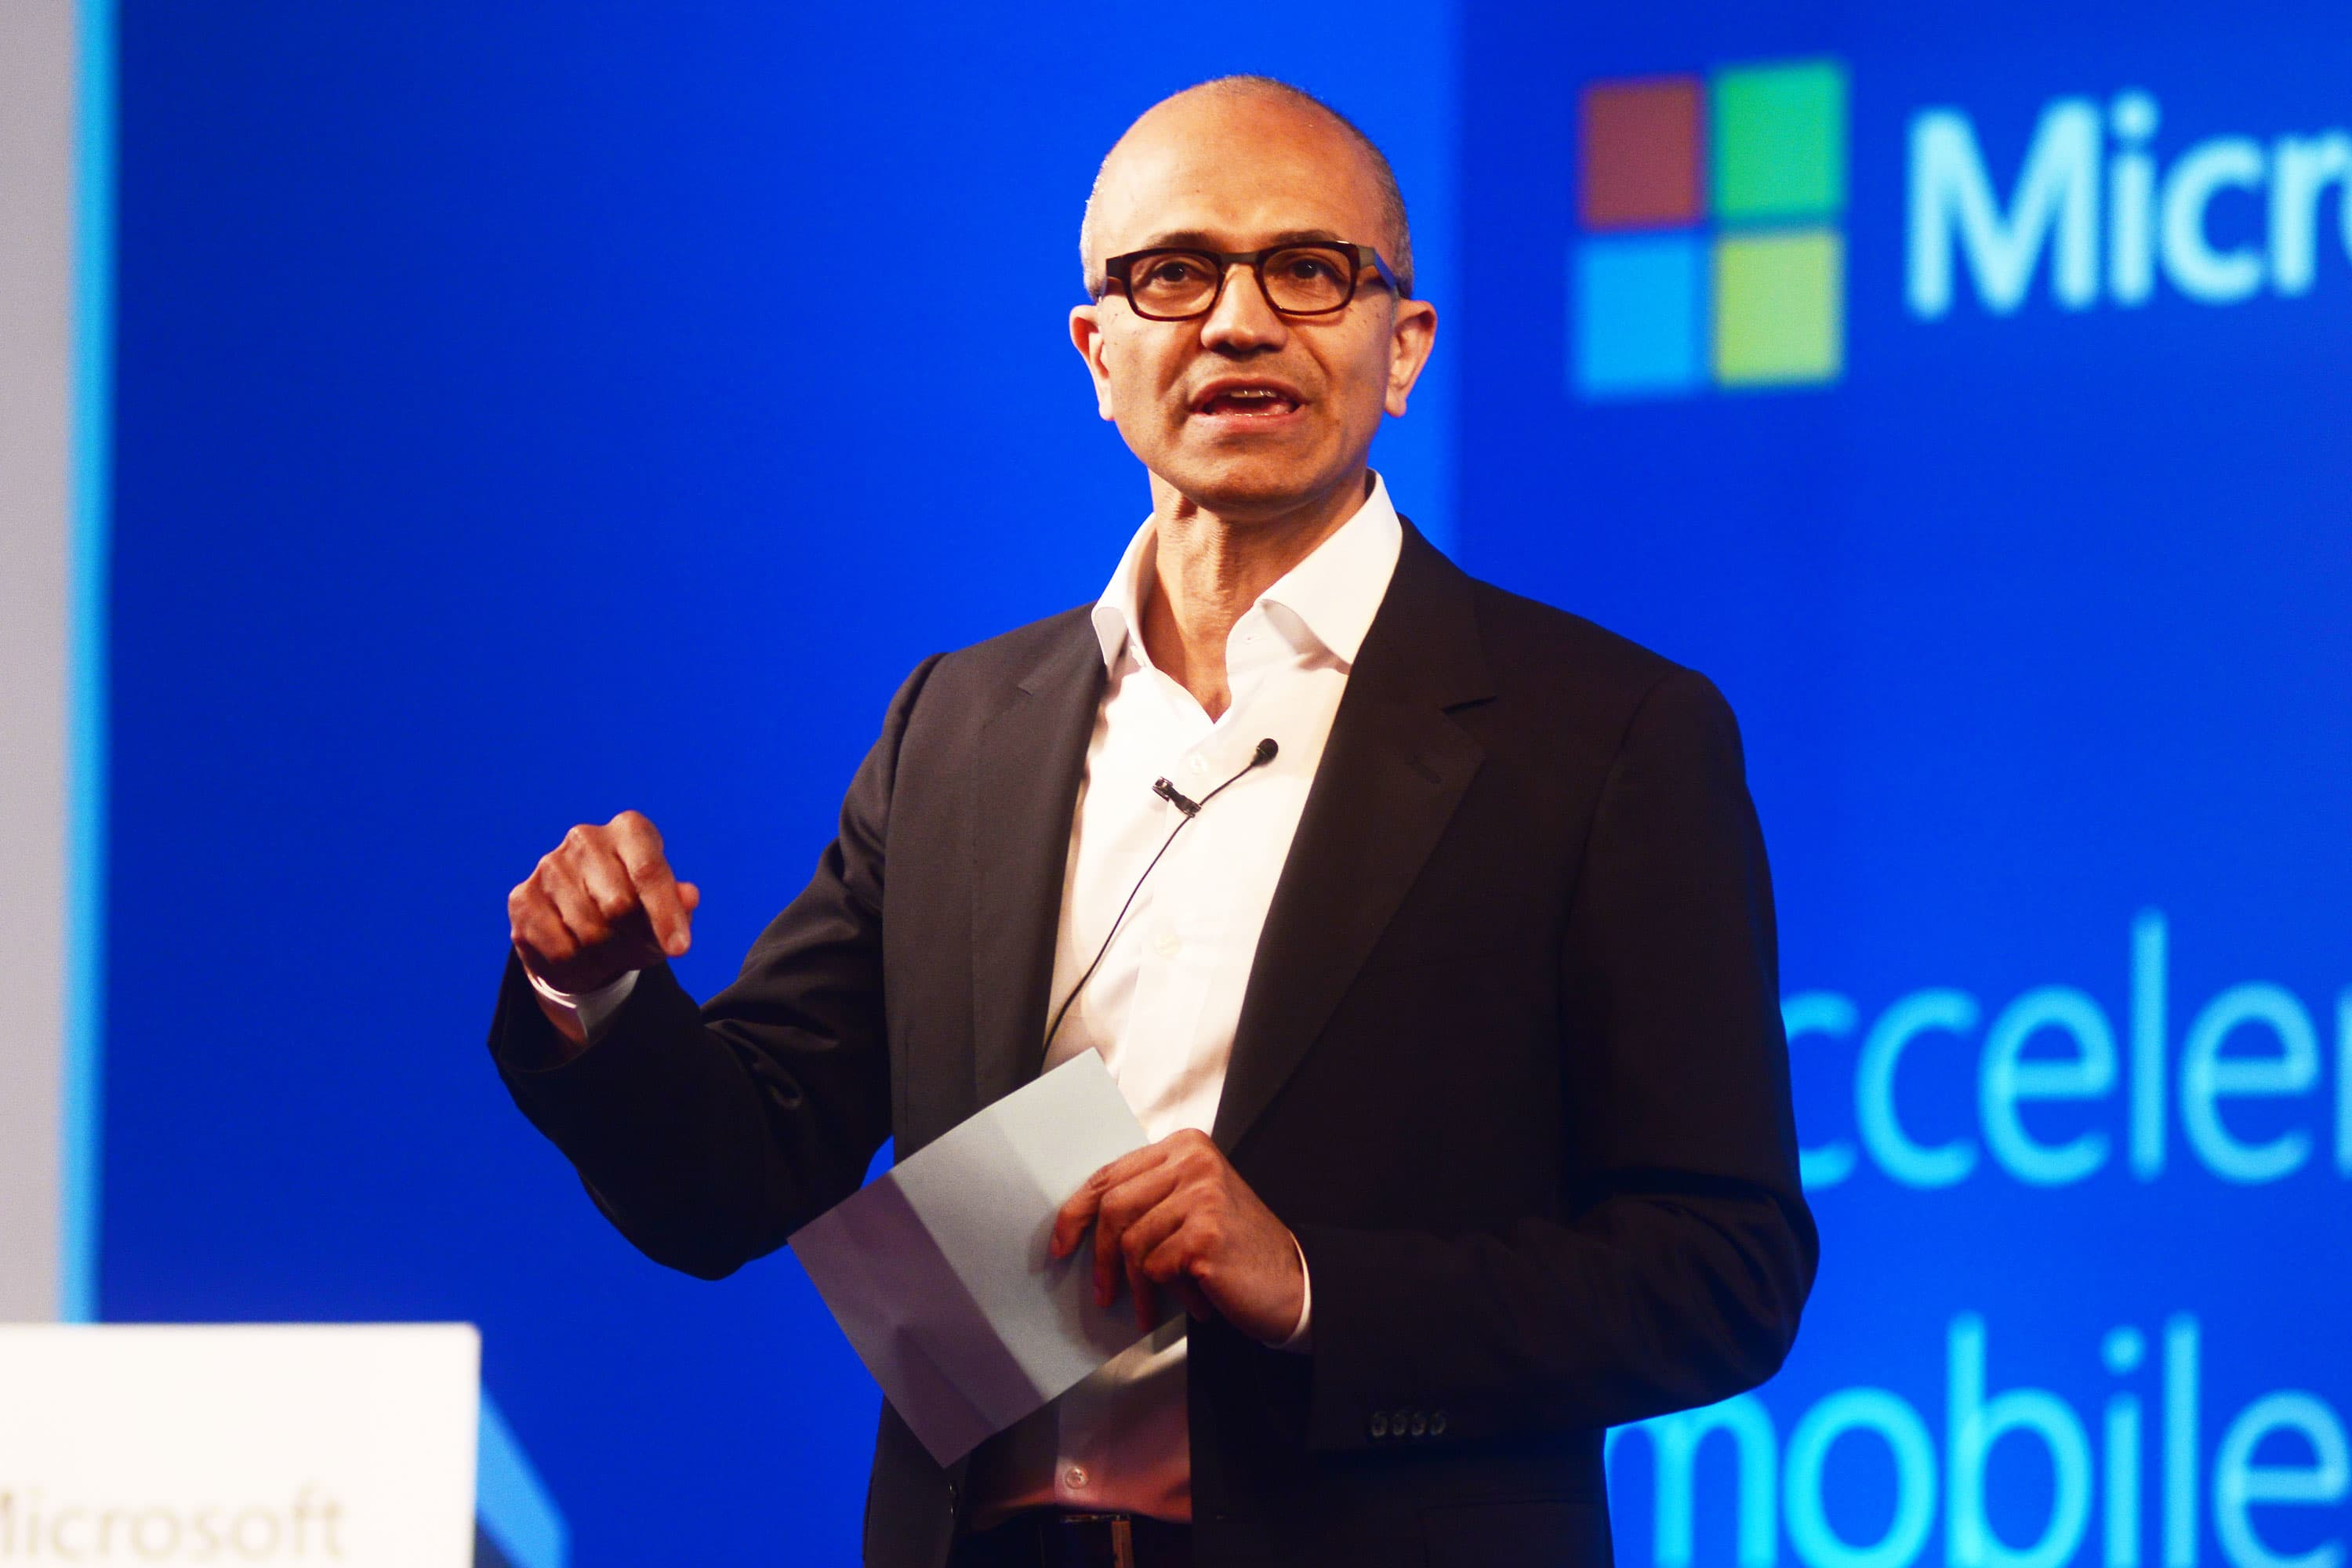 Microsoft to unveil new version of Windows on June 24 – CNBC